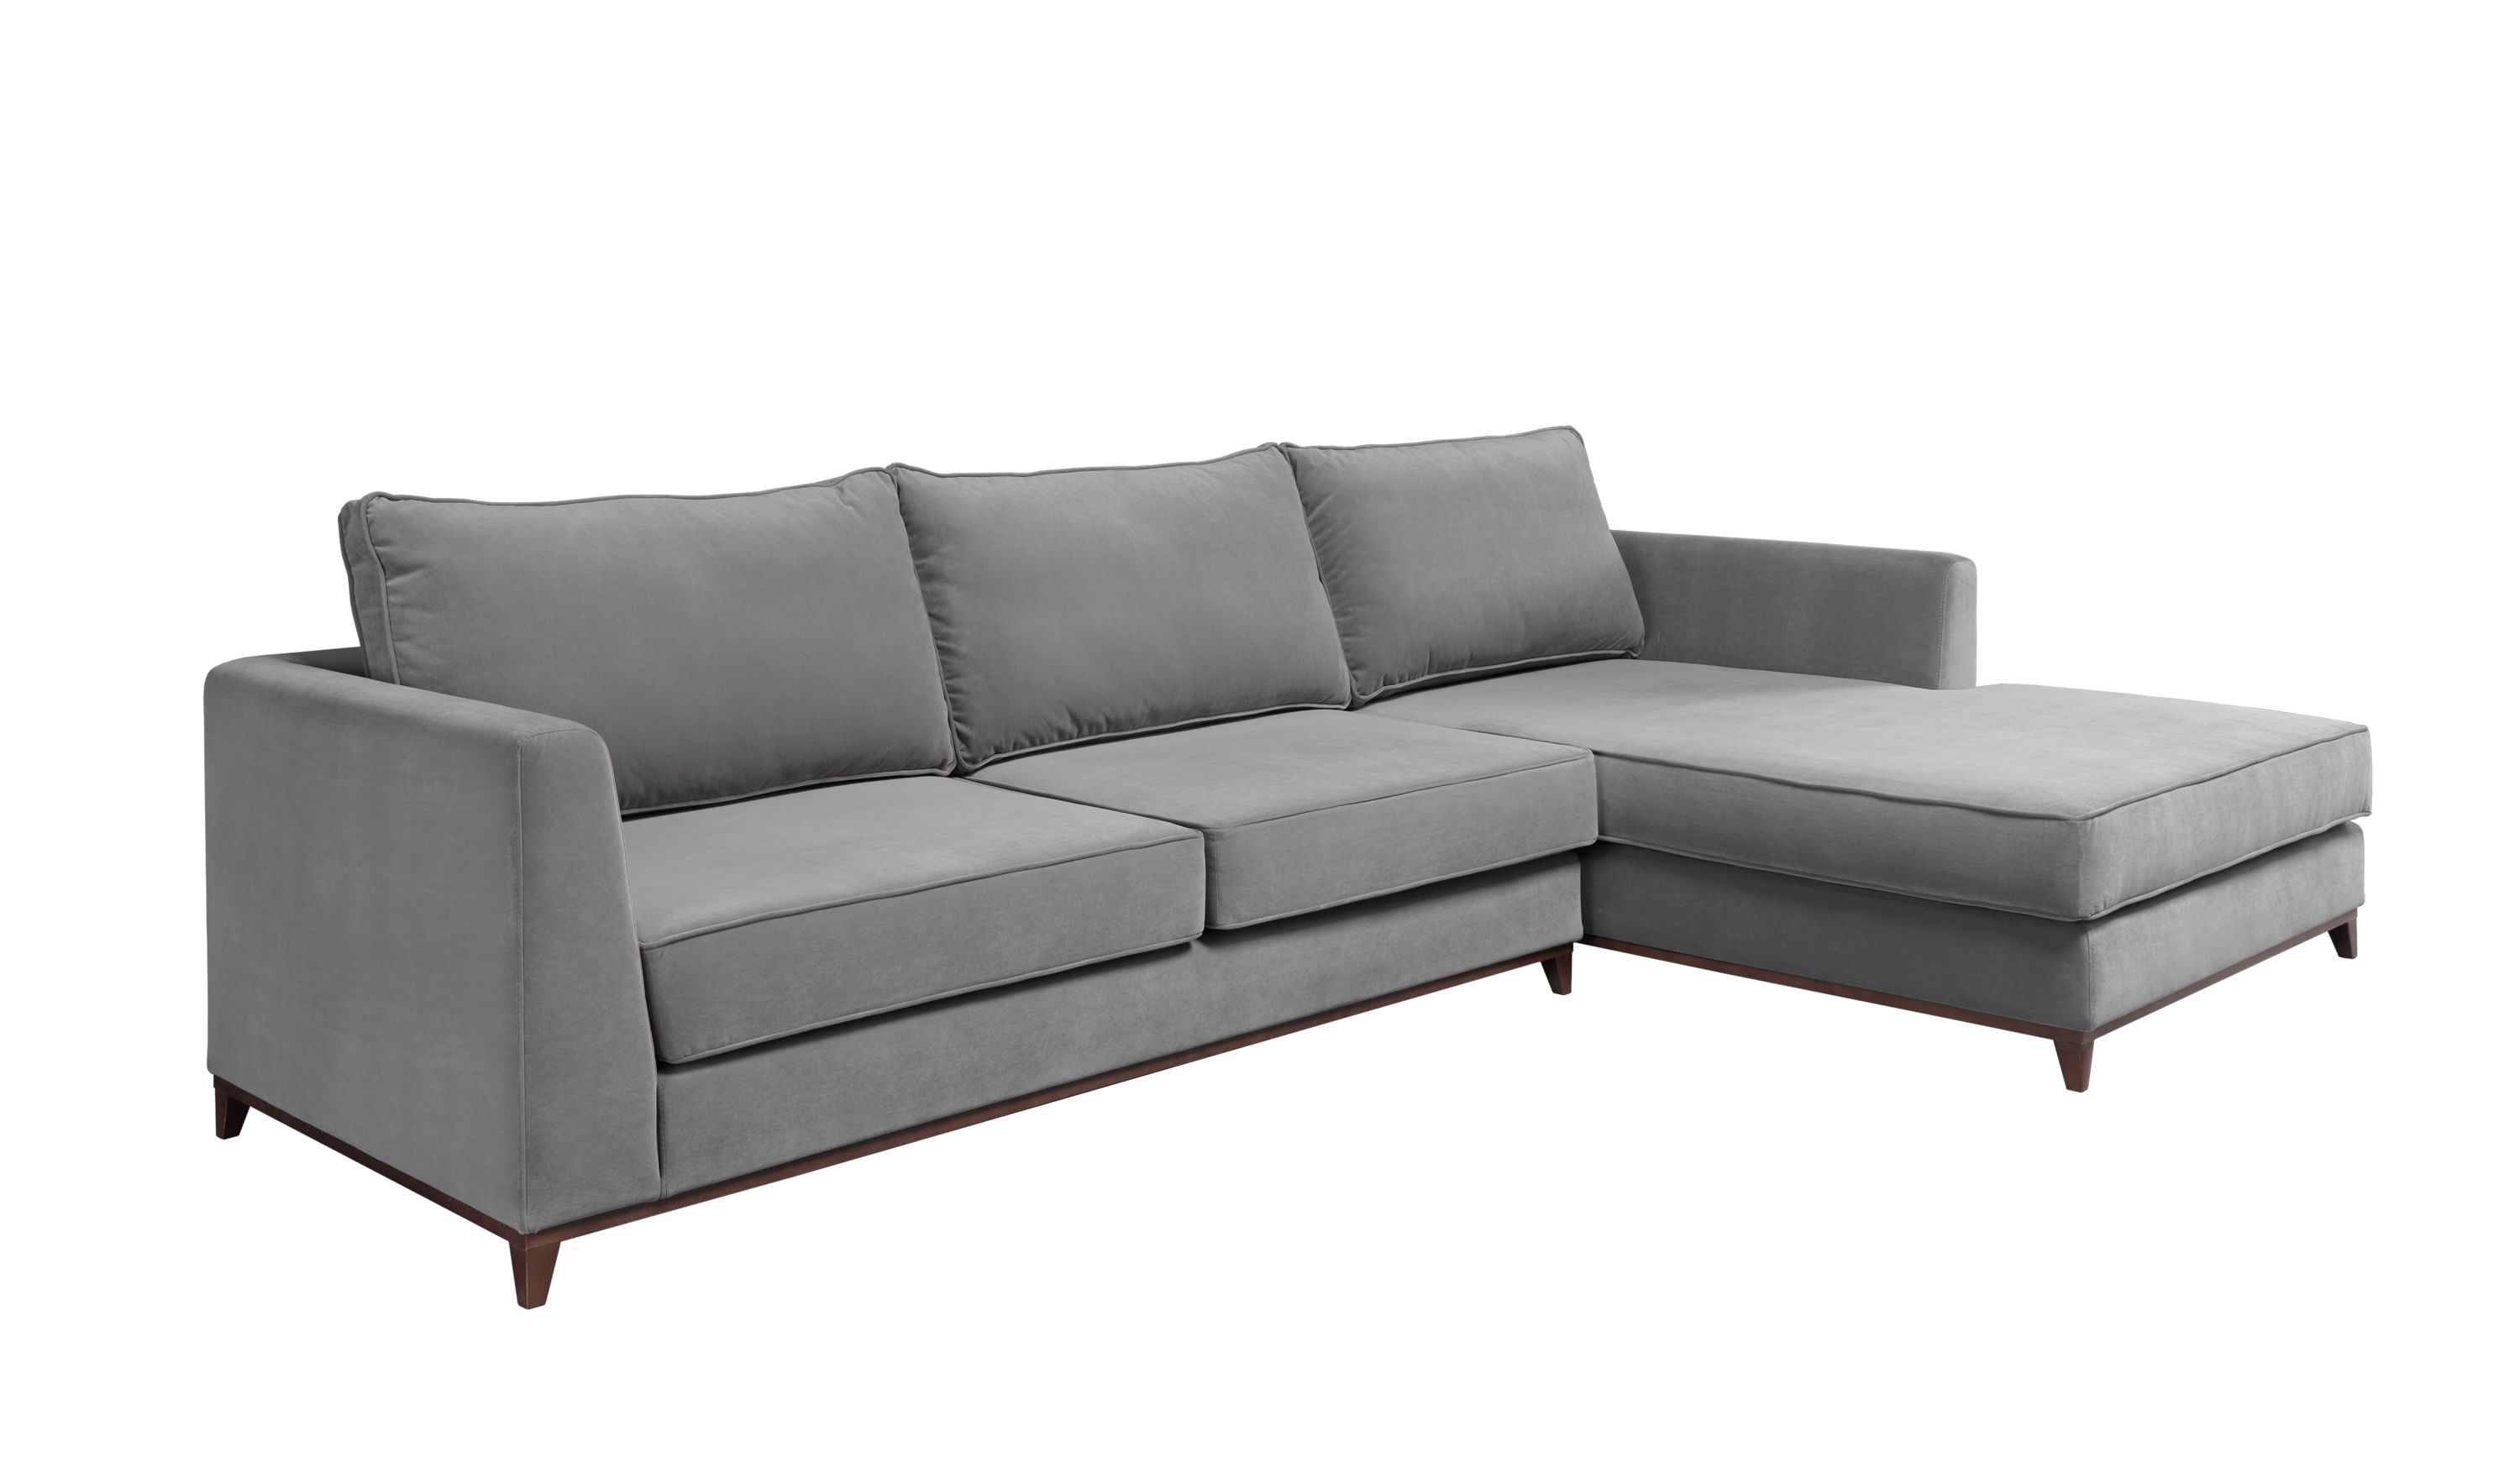 Laskasas London Sofa